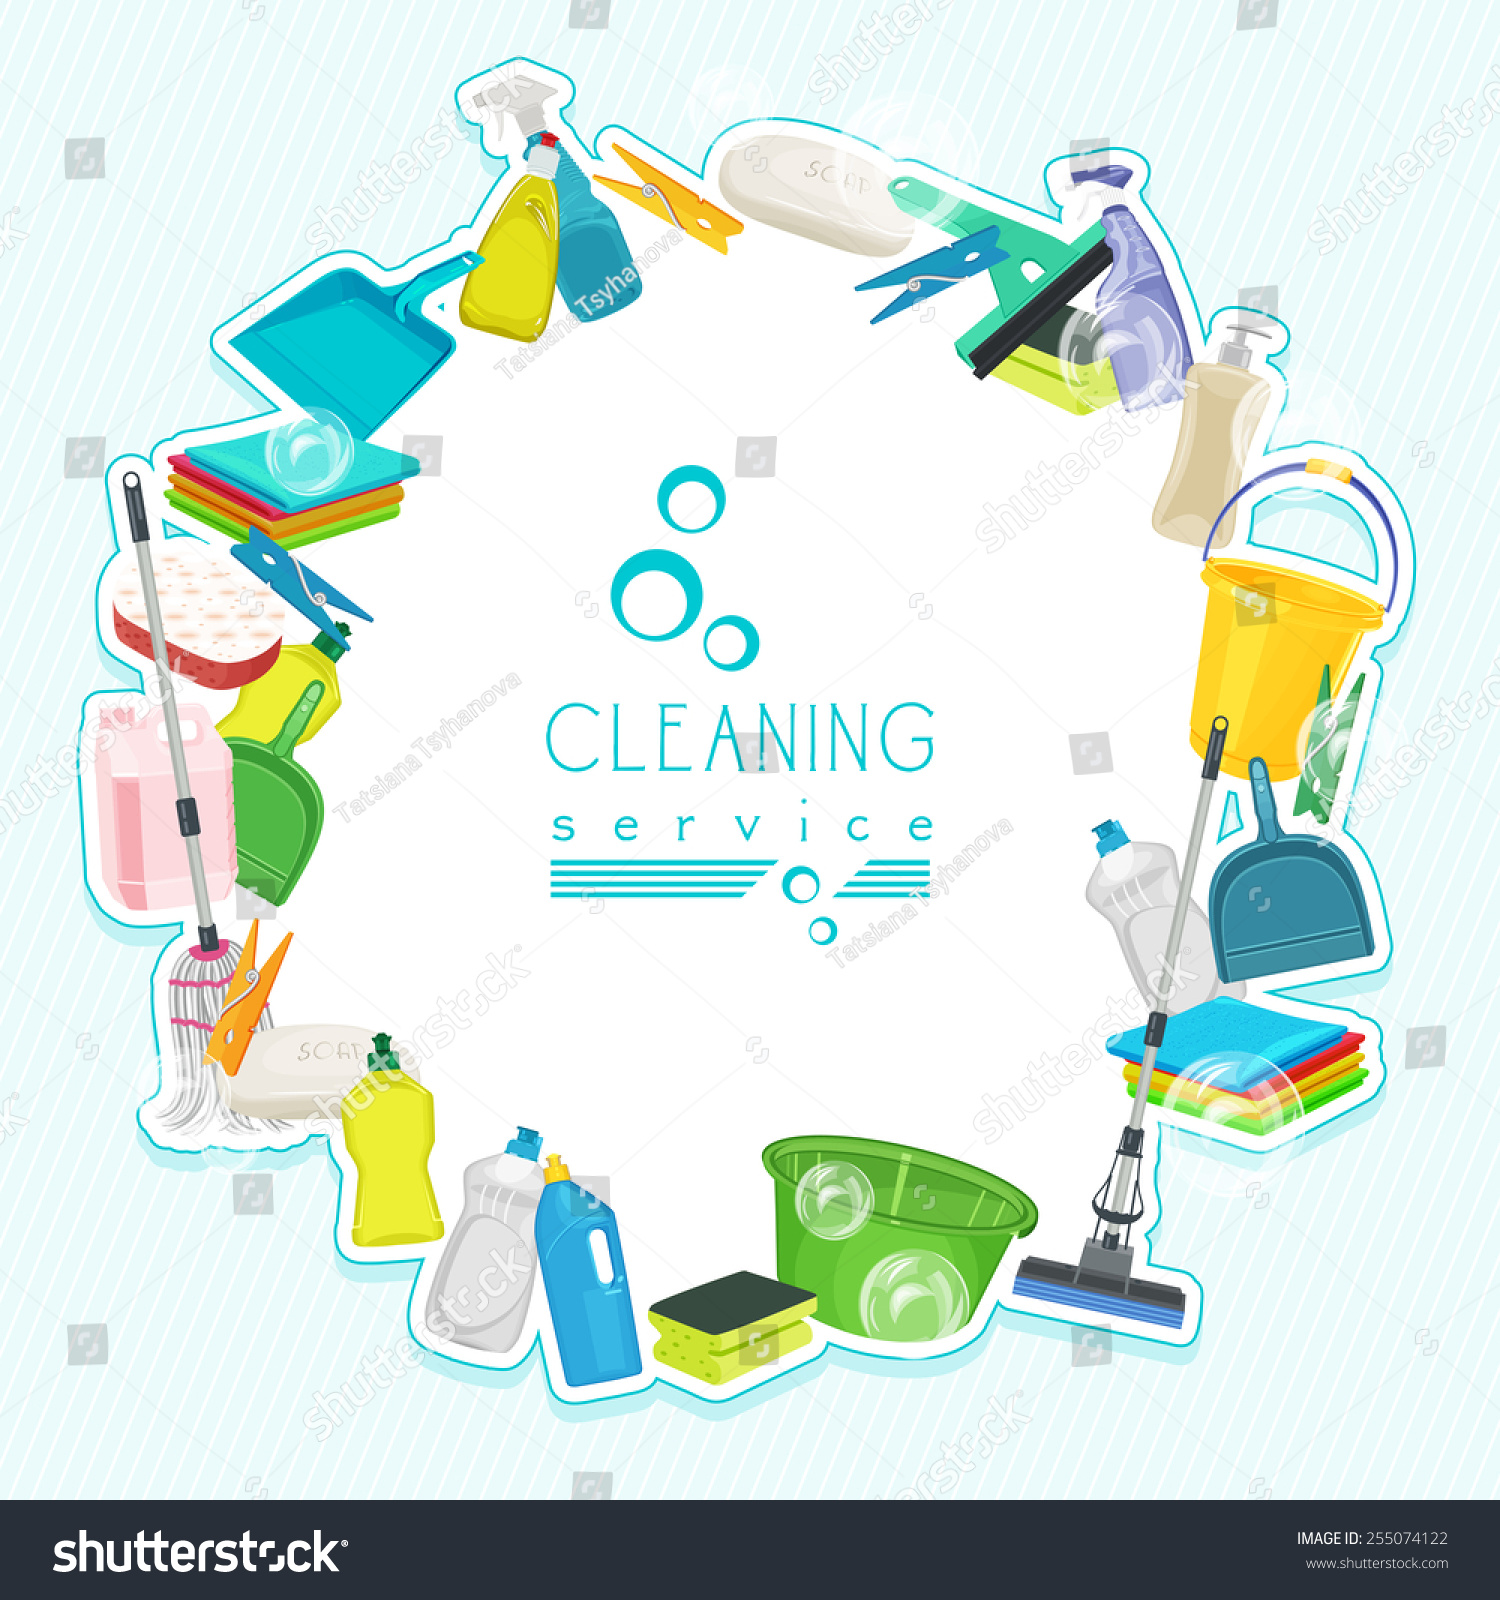 Poster Design Cleaning Service Cleaning Supplies Stock ...